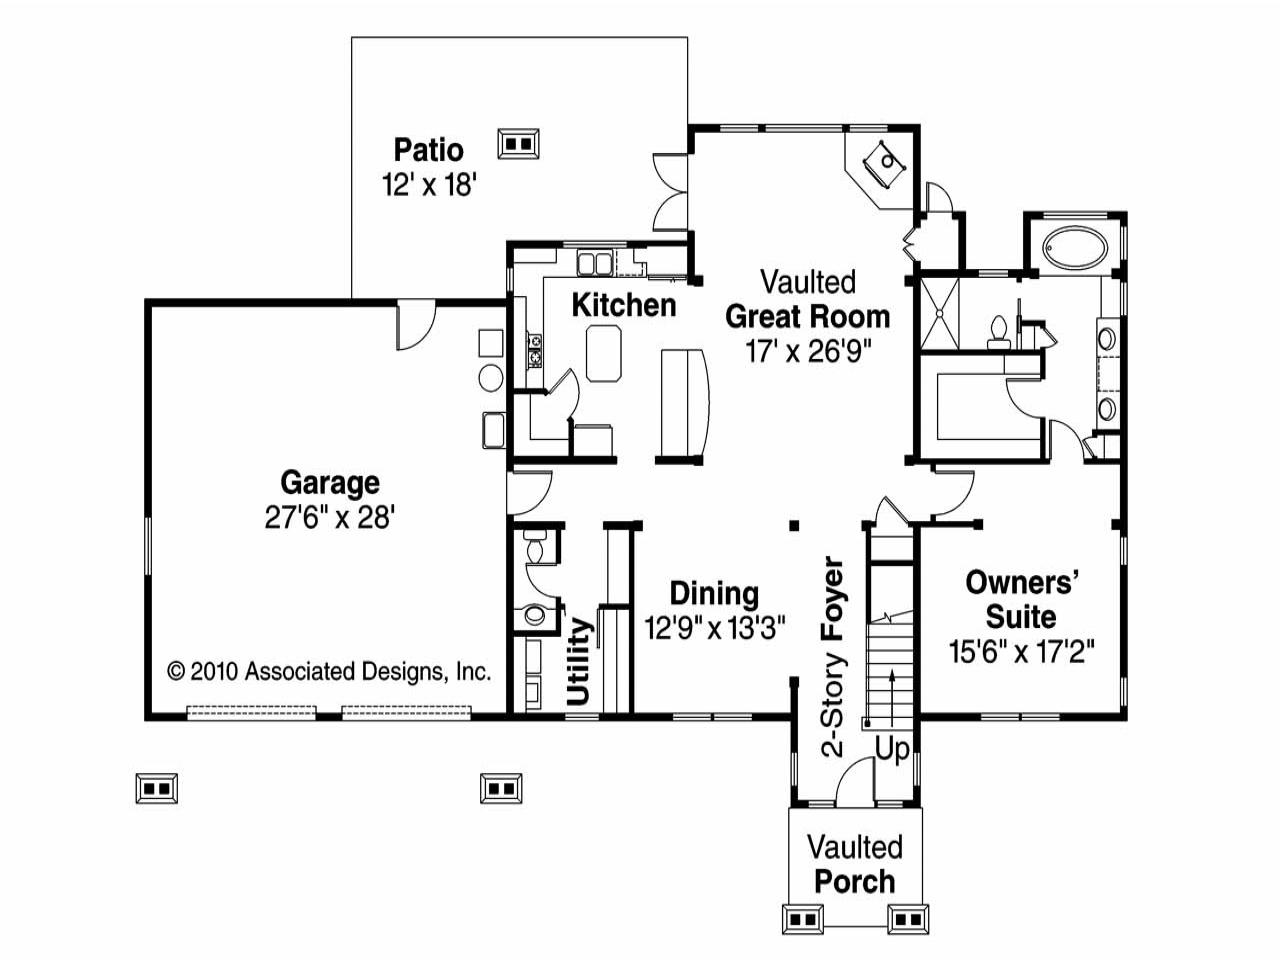 Lodge style house plans lodge style house floor plans for Lodge style floor plans